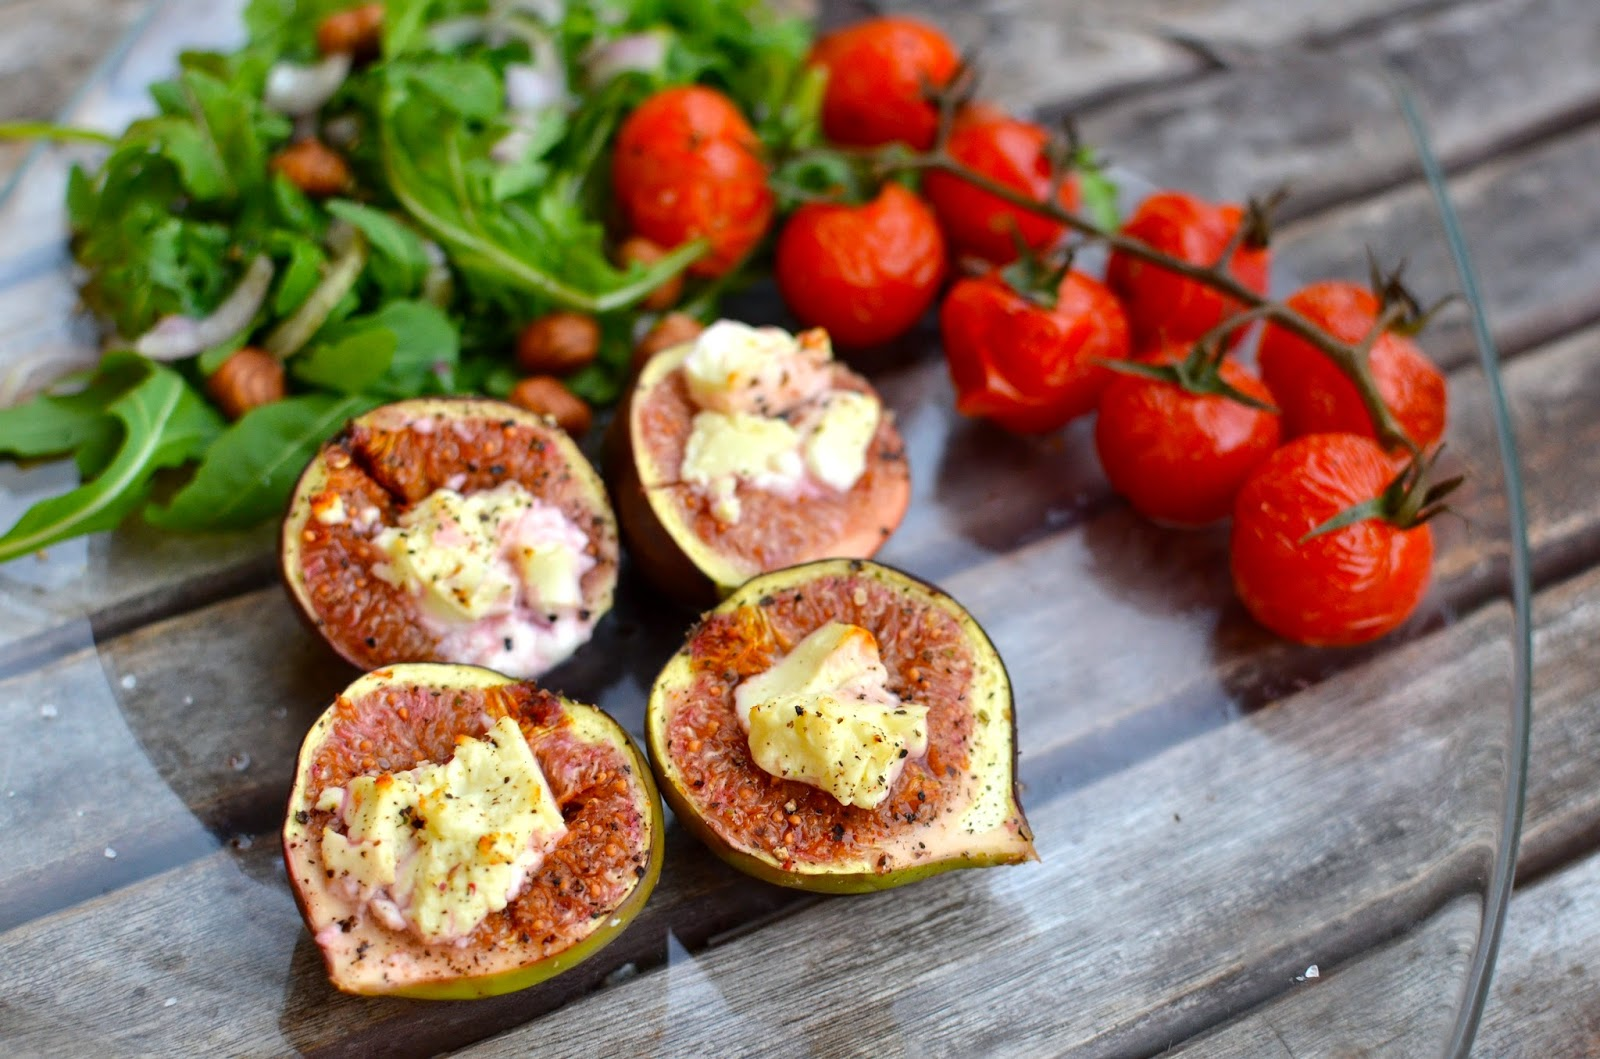 Recipe Roasted tomatoes and figs with feta cheese